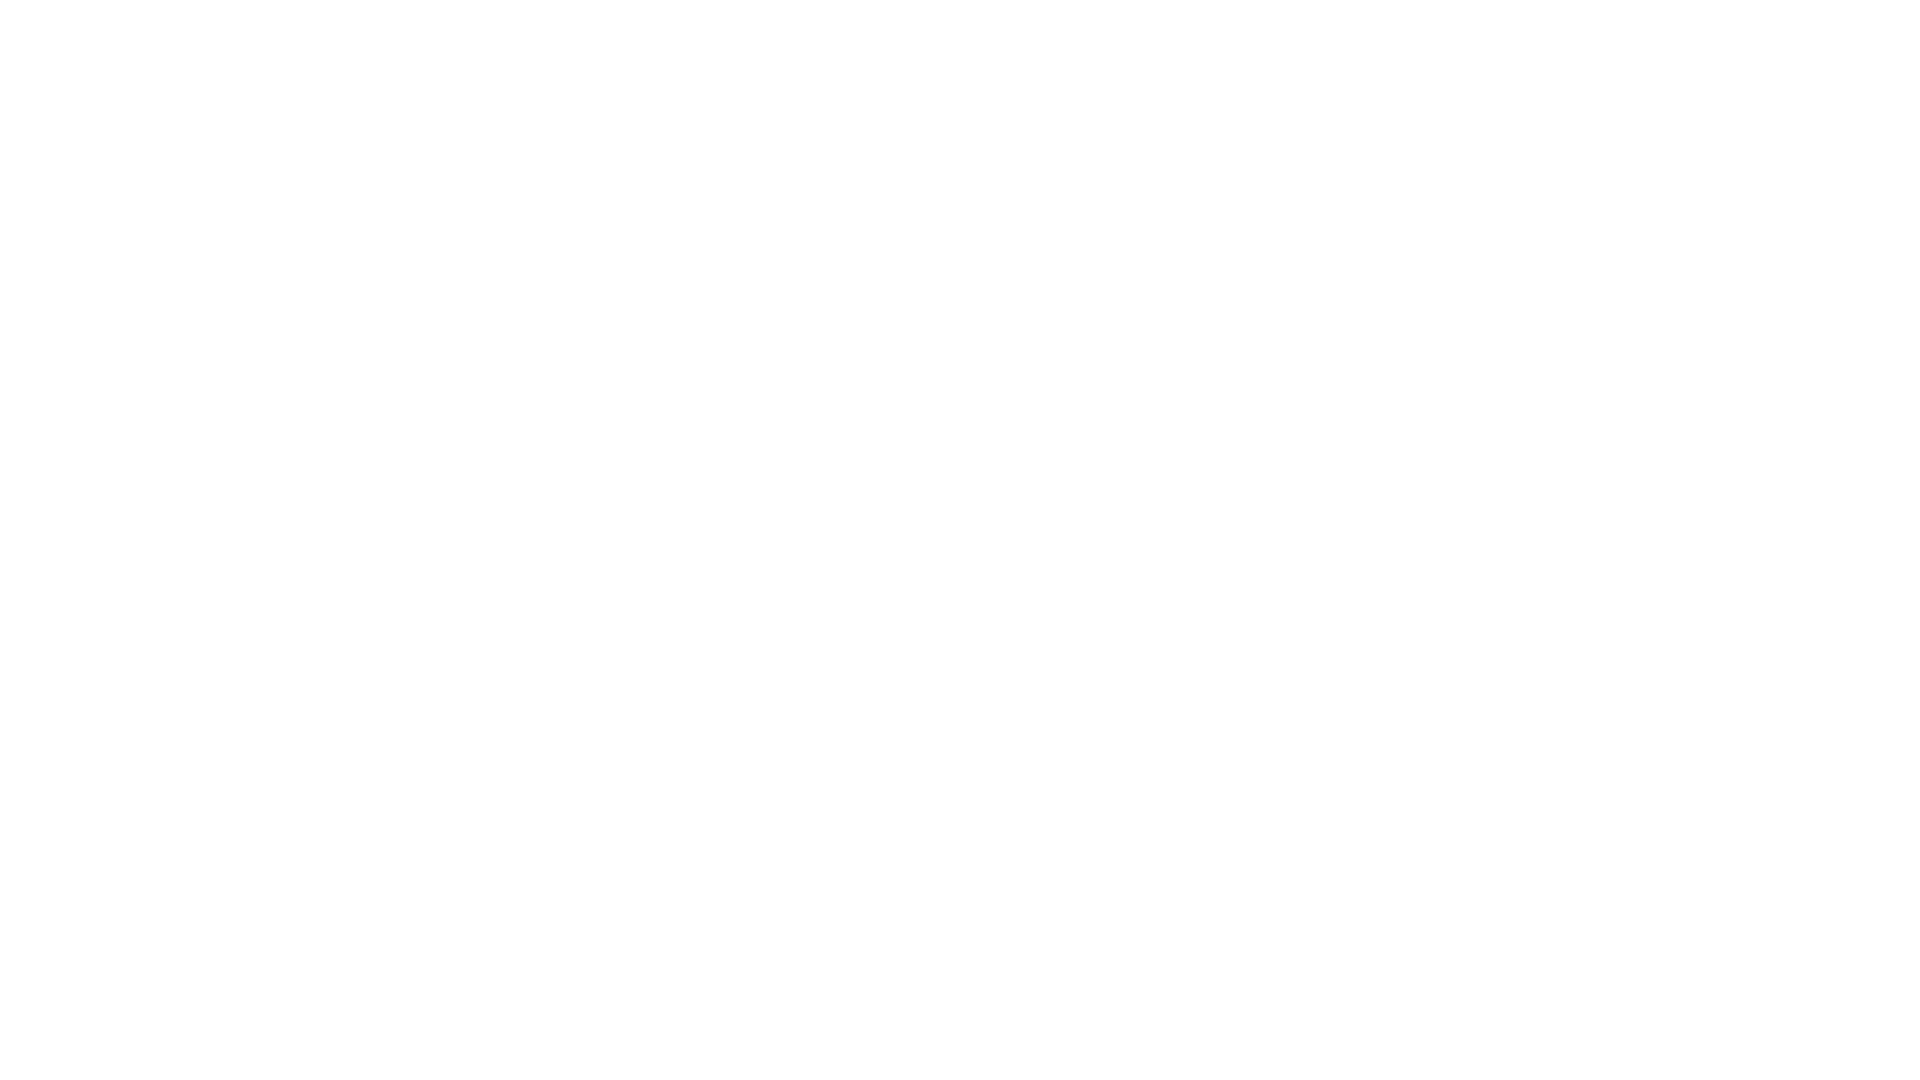 Be trustworthy.  Being someone others can count on helps everyone reach higher.